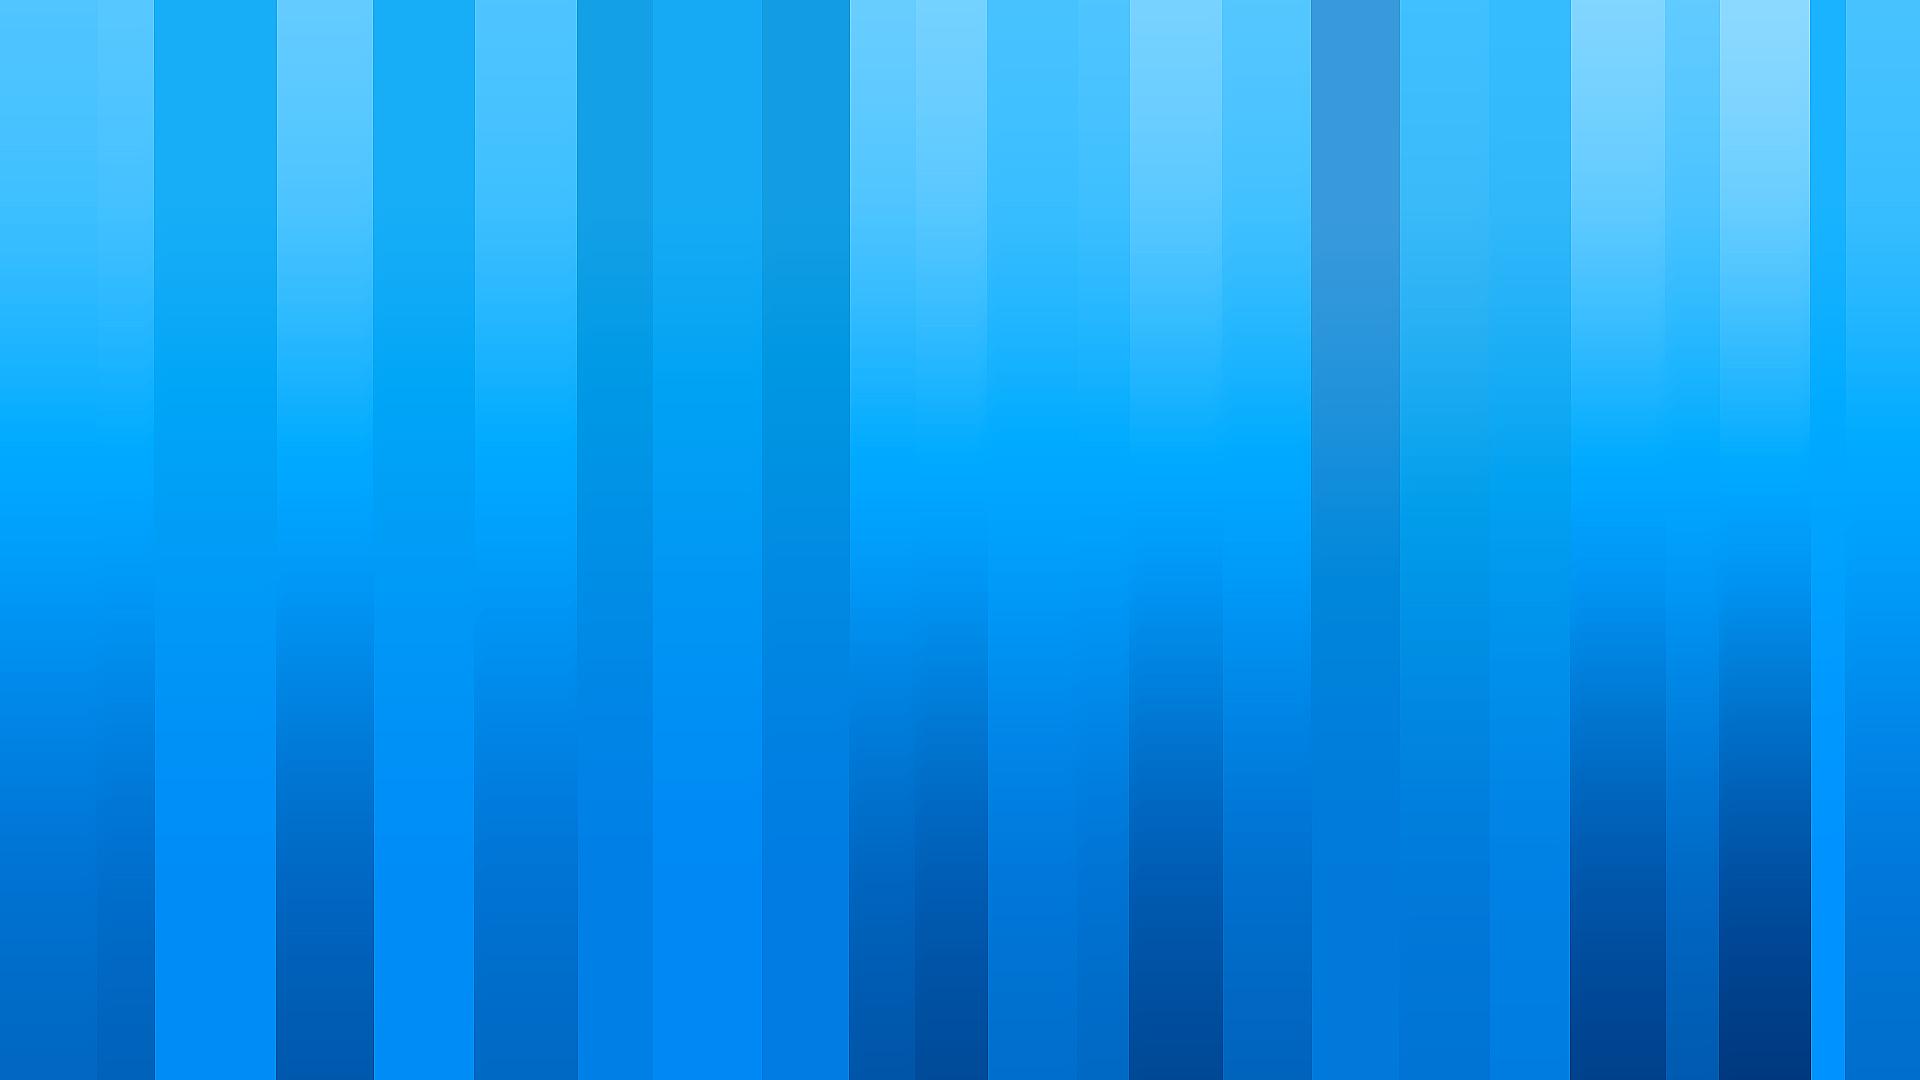 Blue light stripes wallpaper by msagovac on DeviantArt